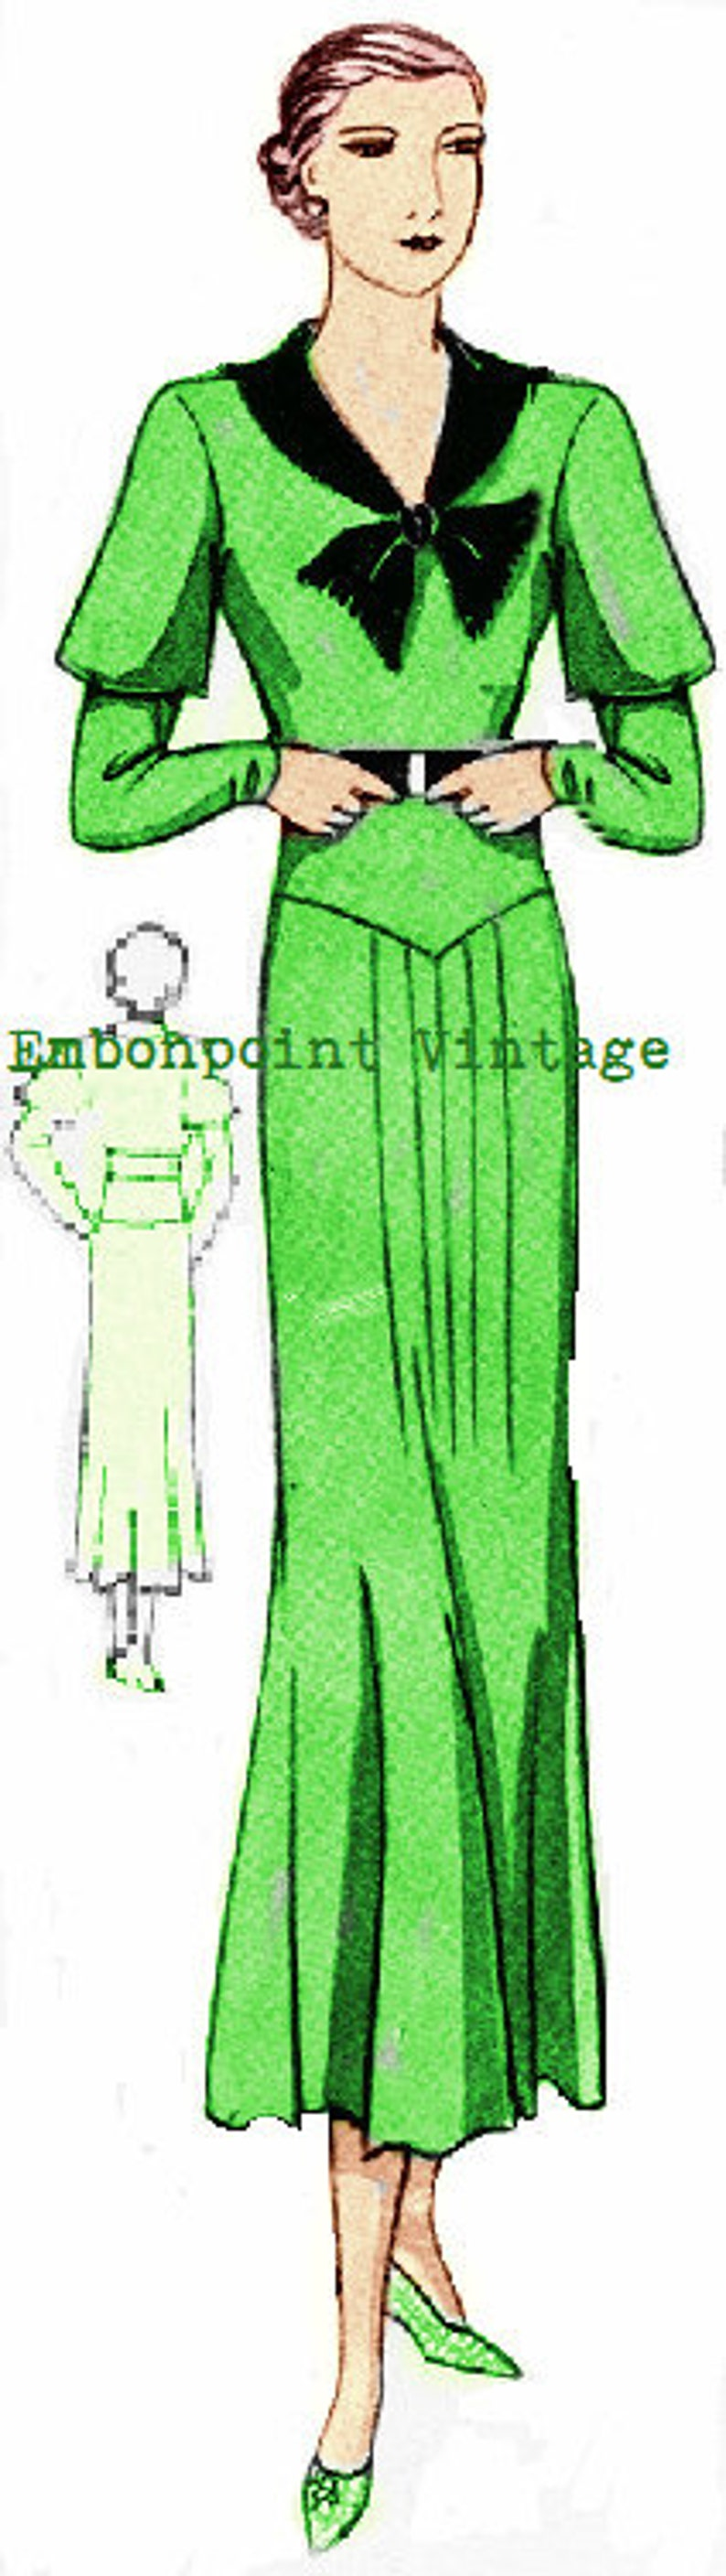 1930s Fashion Colors & Fabric Plus Size (or any size) 1934 Vintage Dress Sewing Pattern - PDF - Pattern No 62 Dorothea 1930s 30s Instant Download $8.35 AT vintagedancer.com